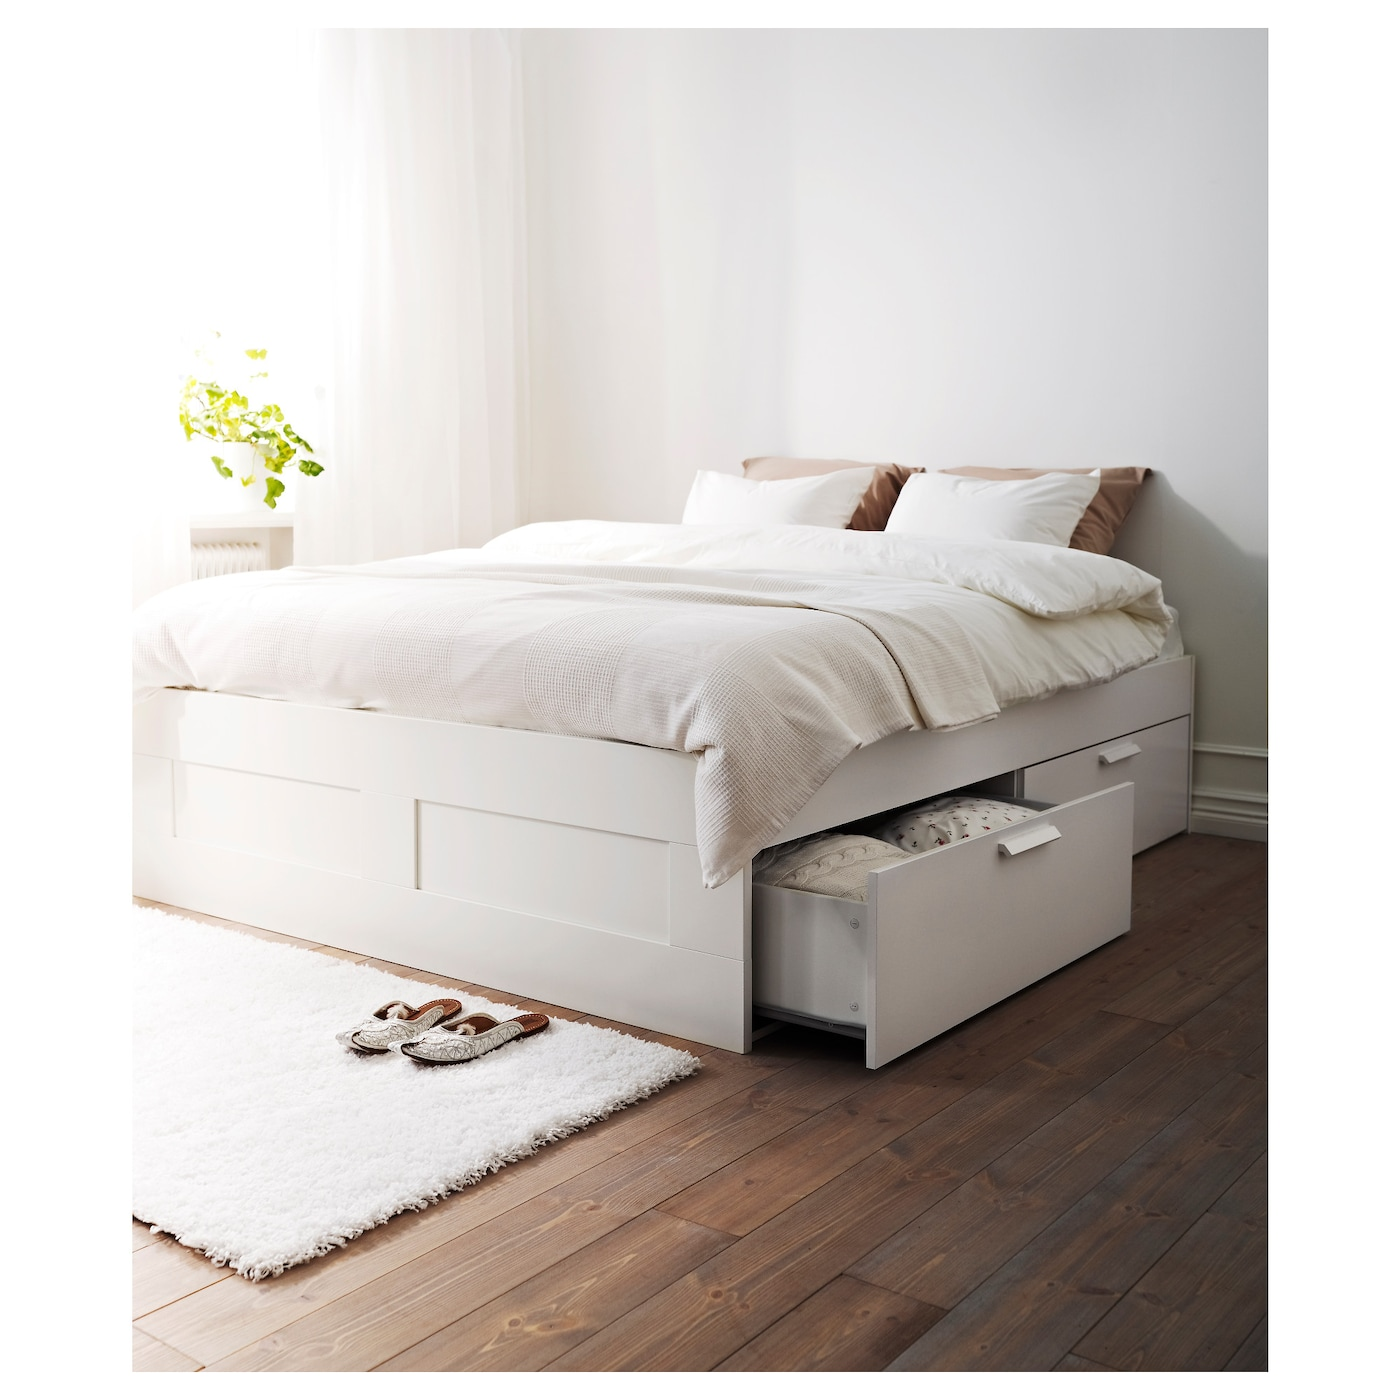 best home throughout ikea decor brimnes review bed